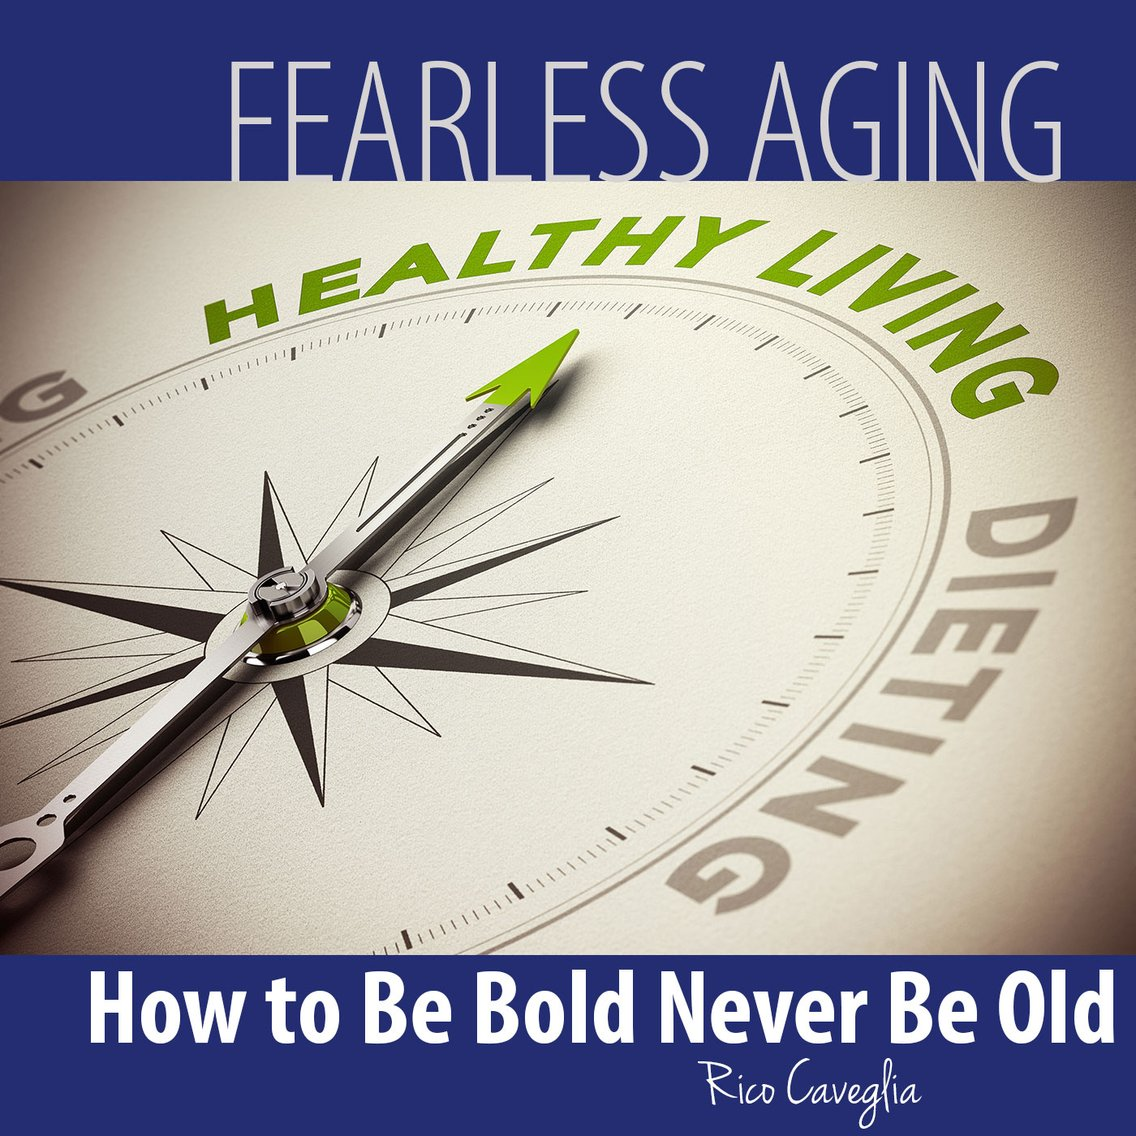 Fearless Aging - Cover Image